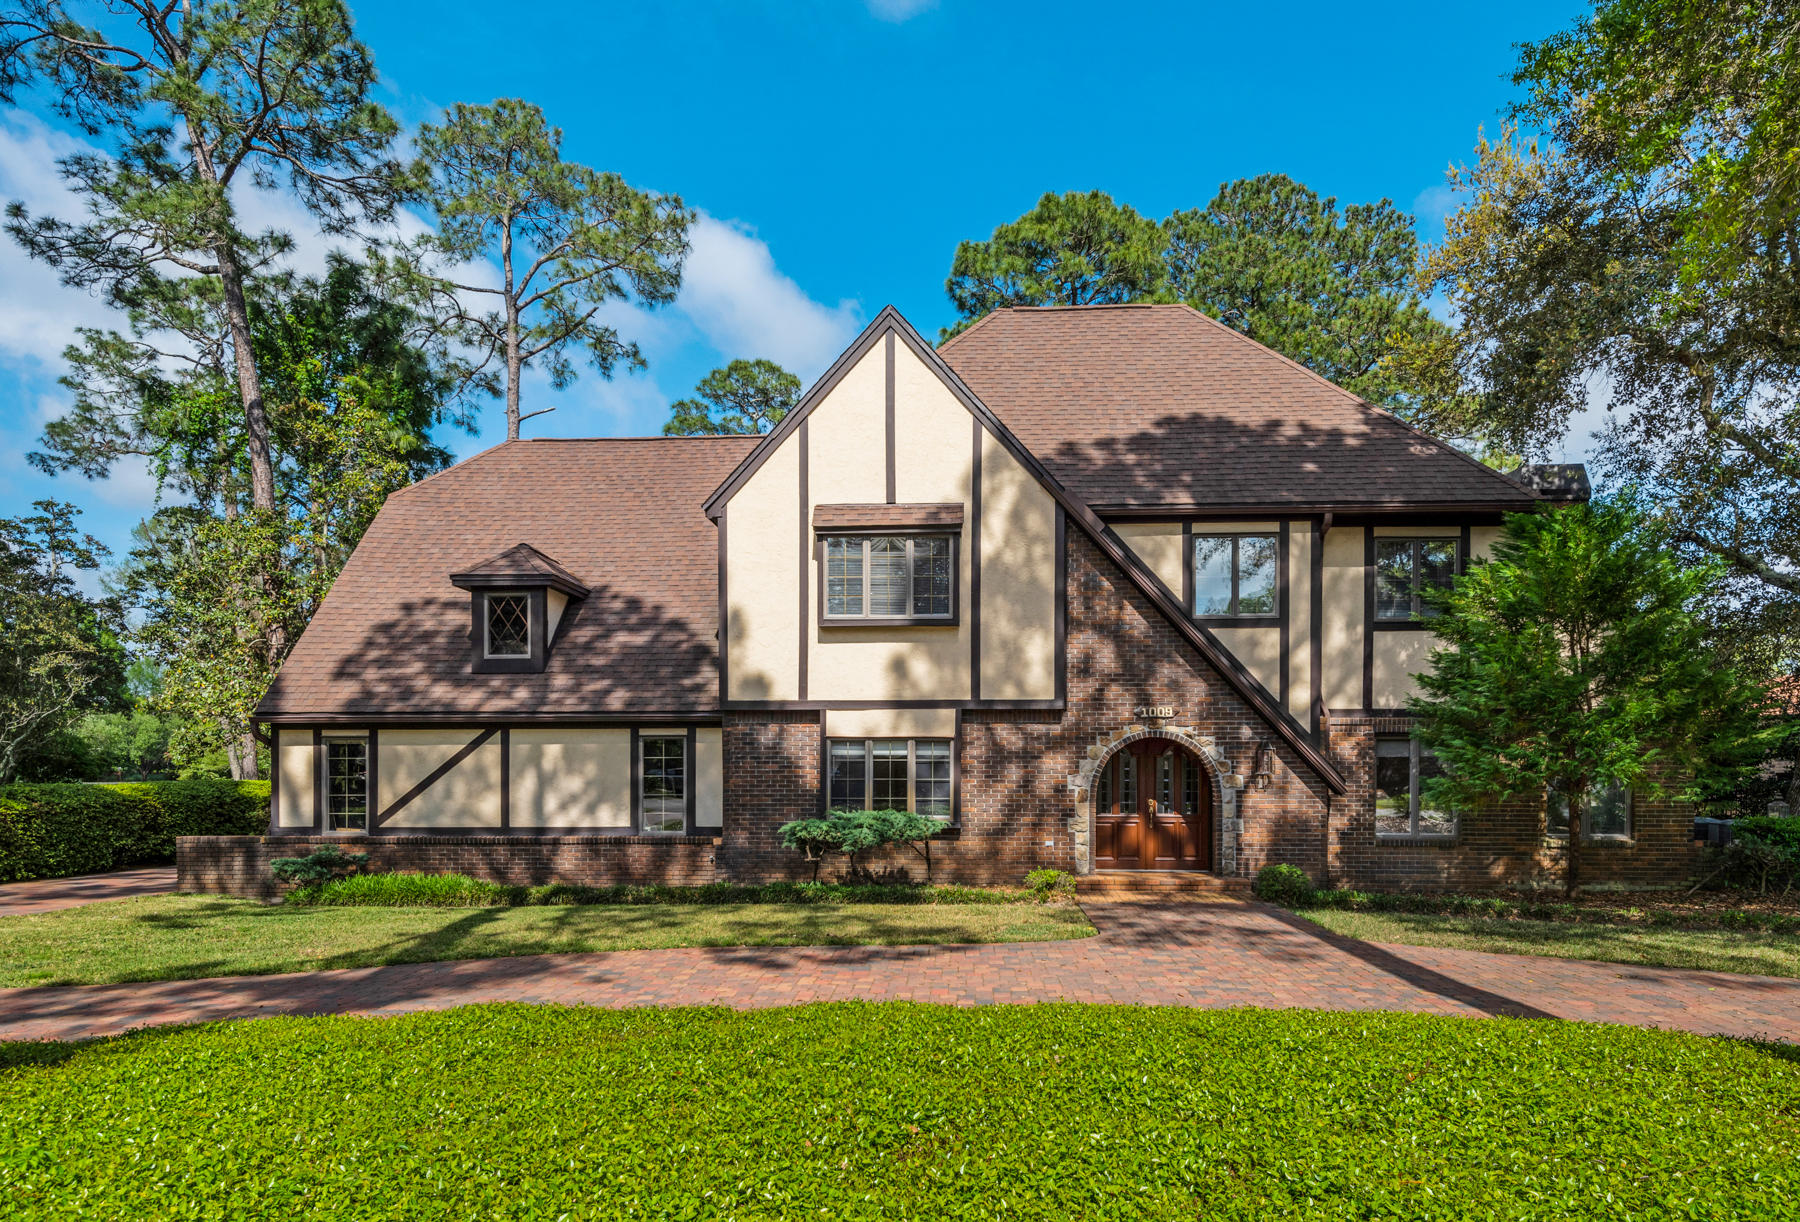 1009 E Troon Drive, Niceville in Okaloosa County, FL 32578 Home for Sale